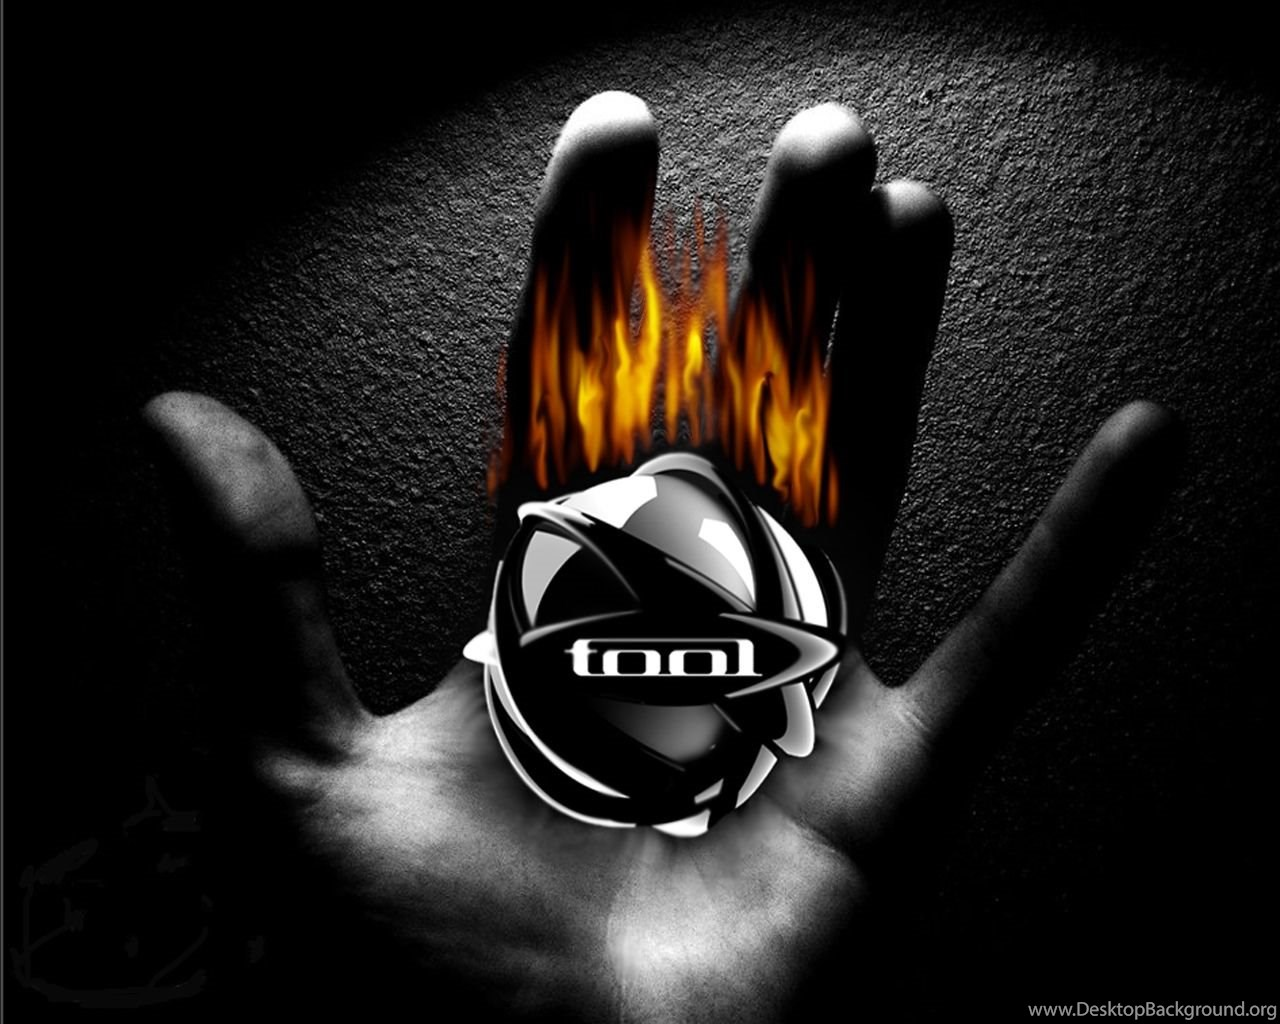 Tool Lateralus Iphone Wallpapers With Live